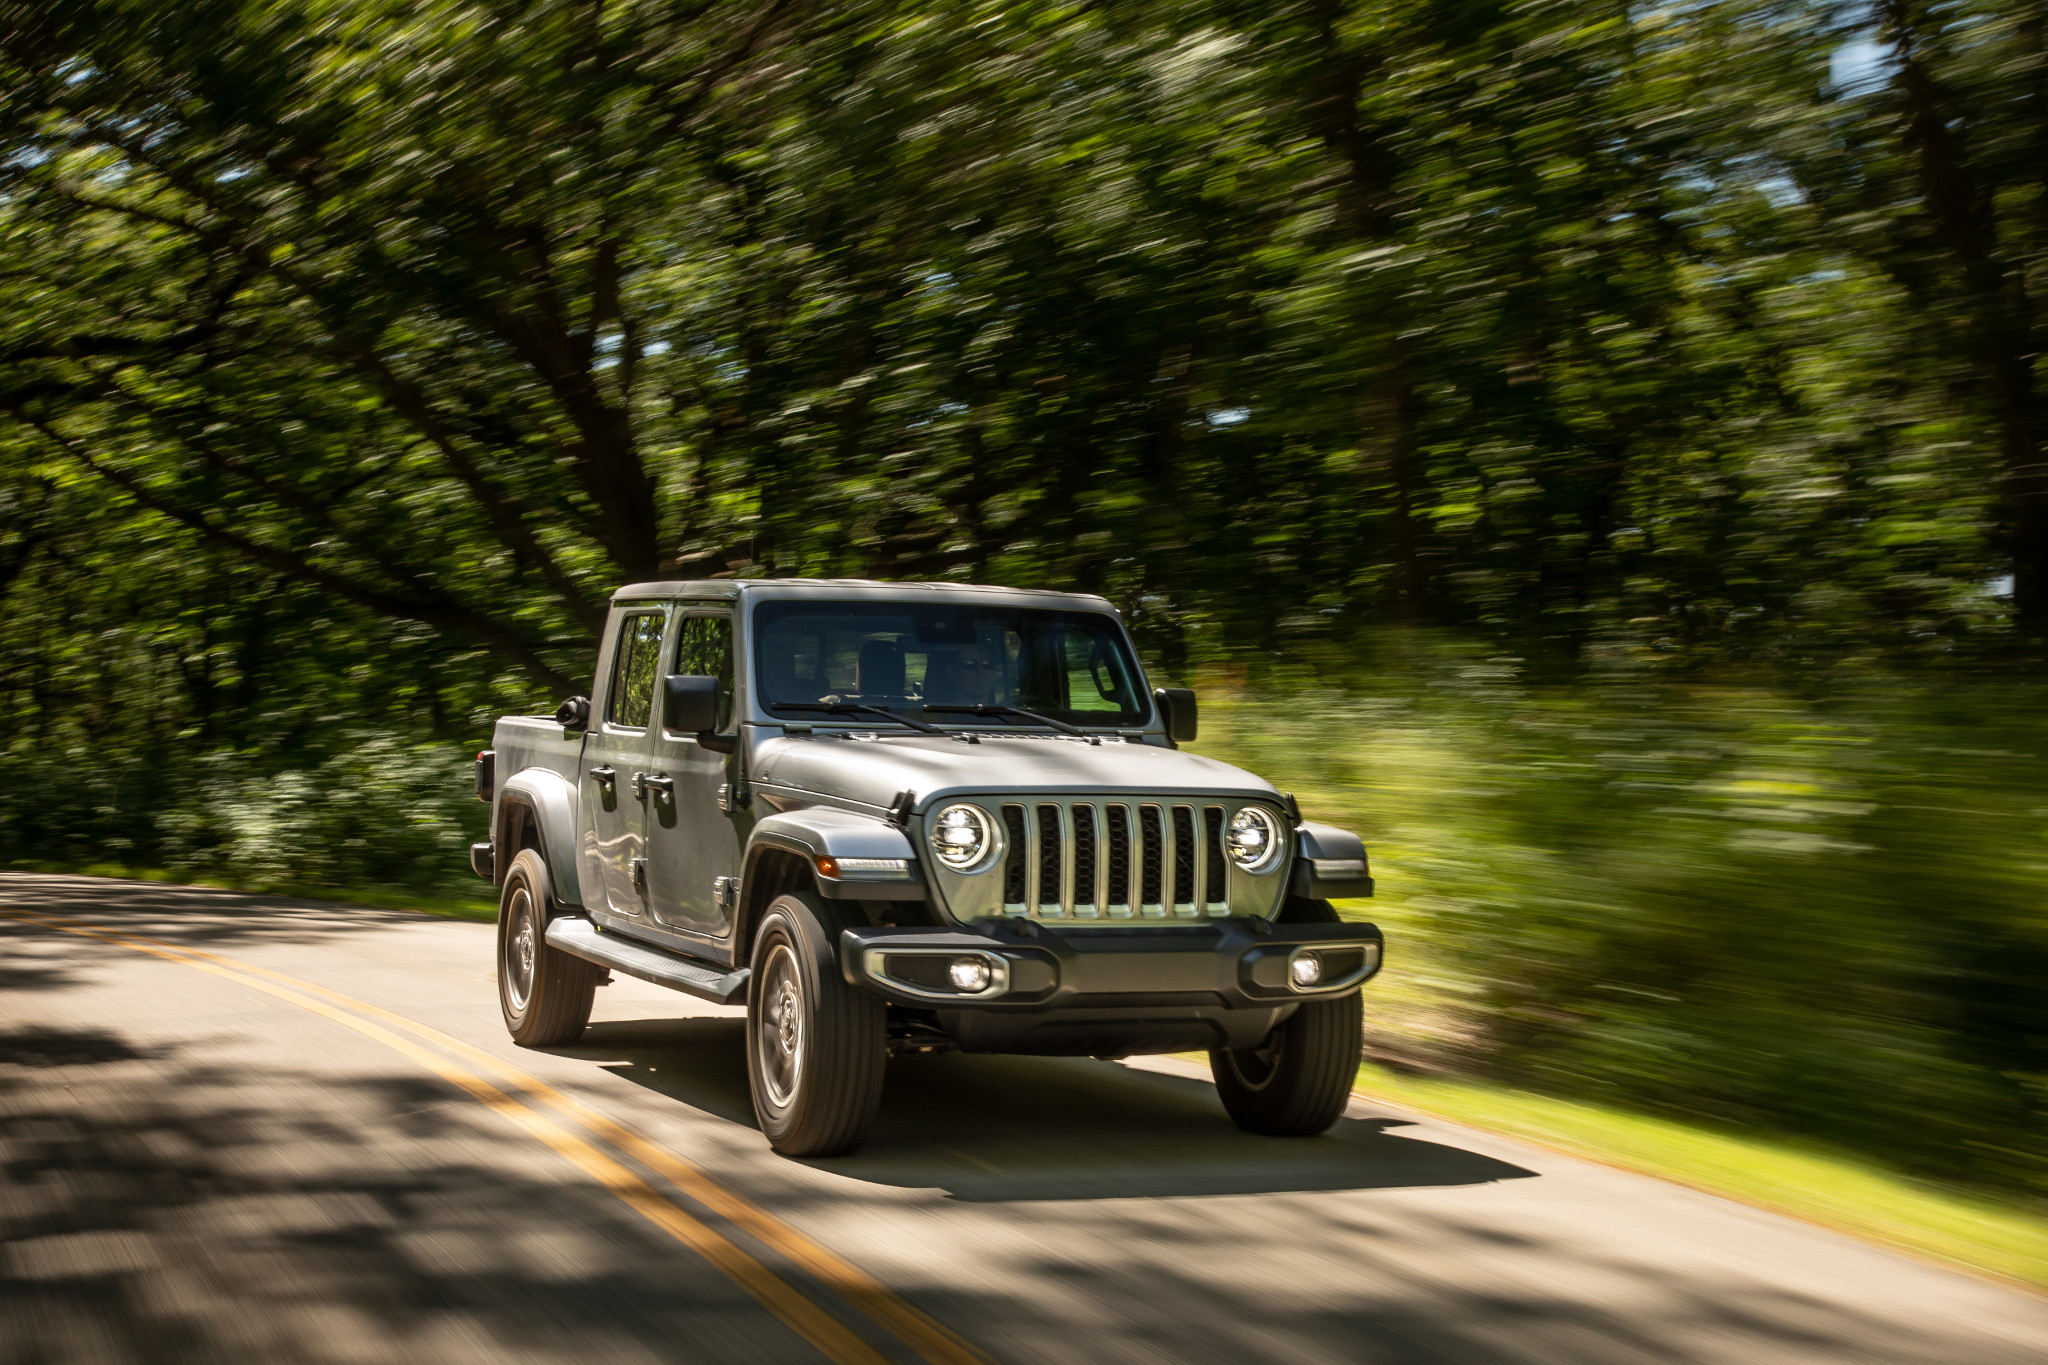 Top 5 Reviews and Videos of the Week: Jeep Gladiator Takes Smooth Ride to the Top